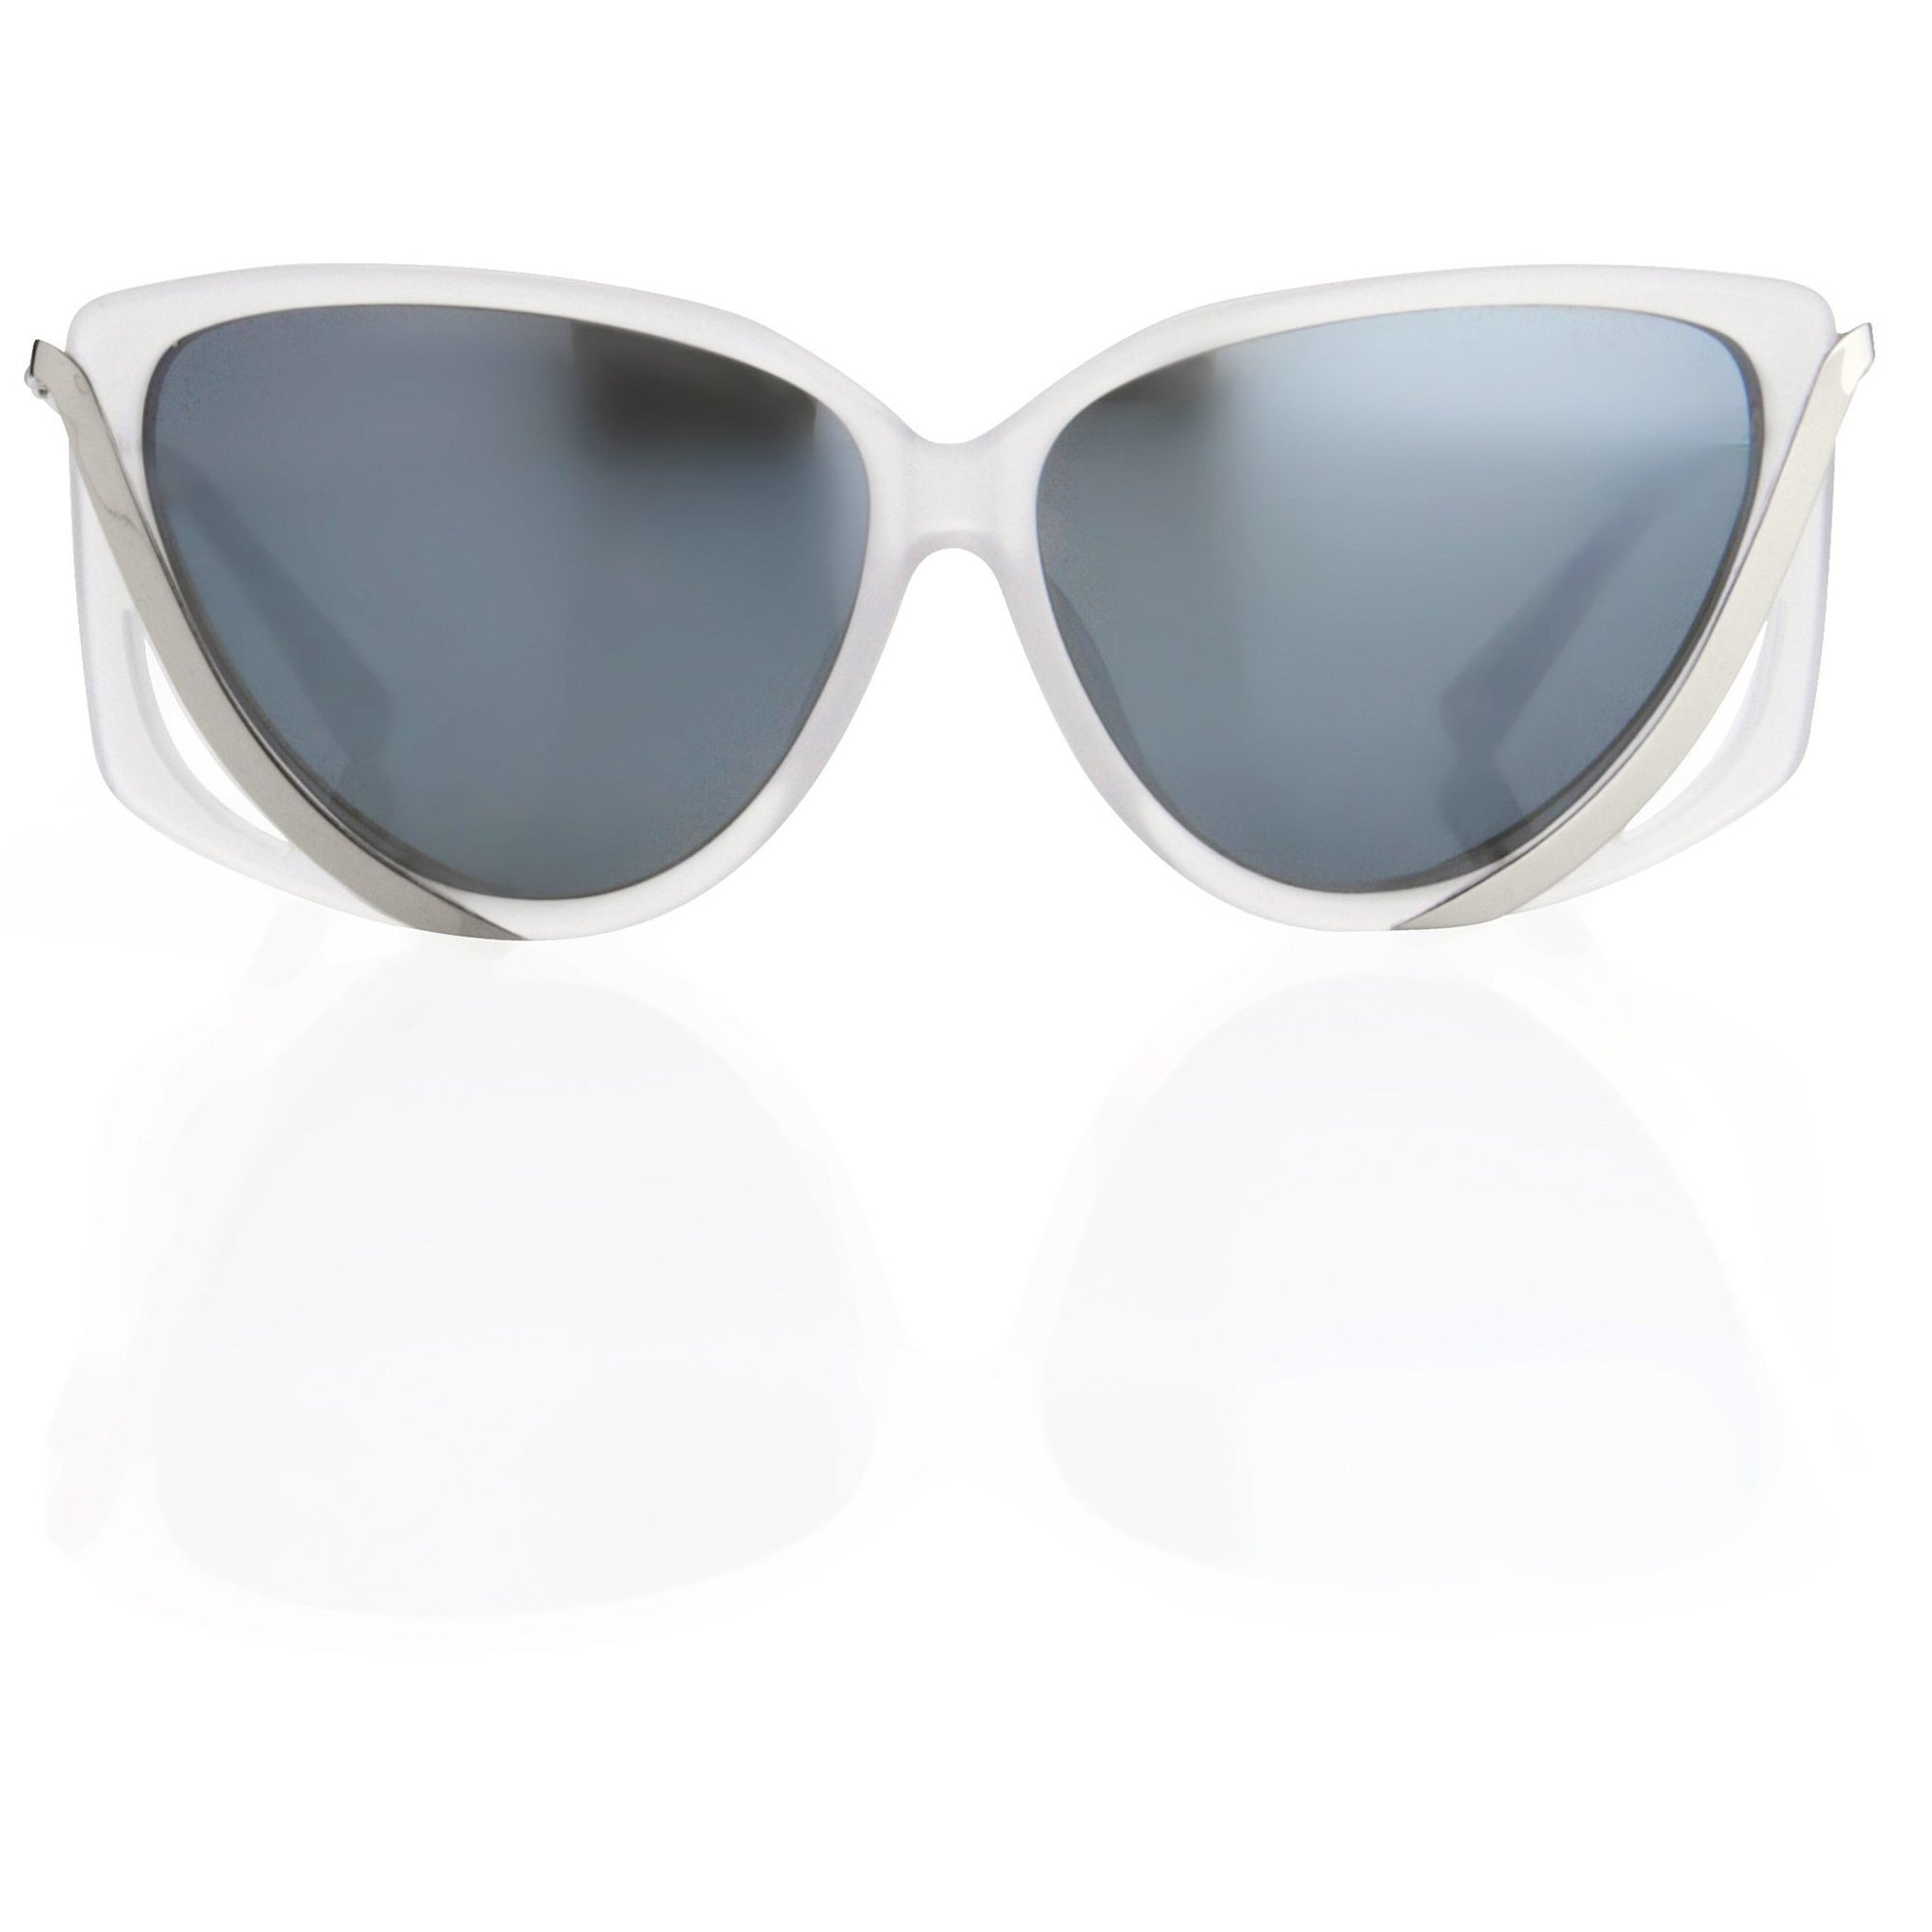 Prabal Gurung Sunglasses Rectangular Smokey White Cut Out With Grey Category 3 Graduated Lenses PG4C2SUN - Watches & Crystals